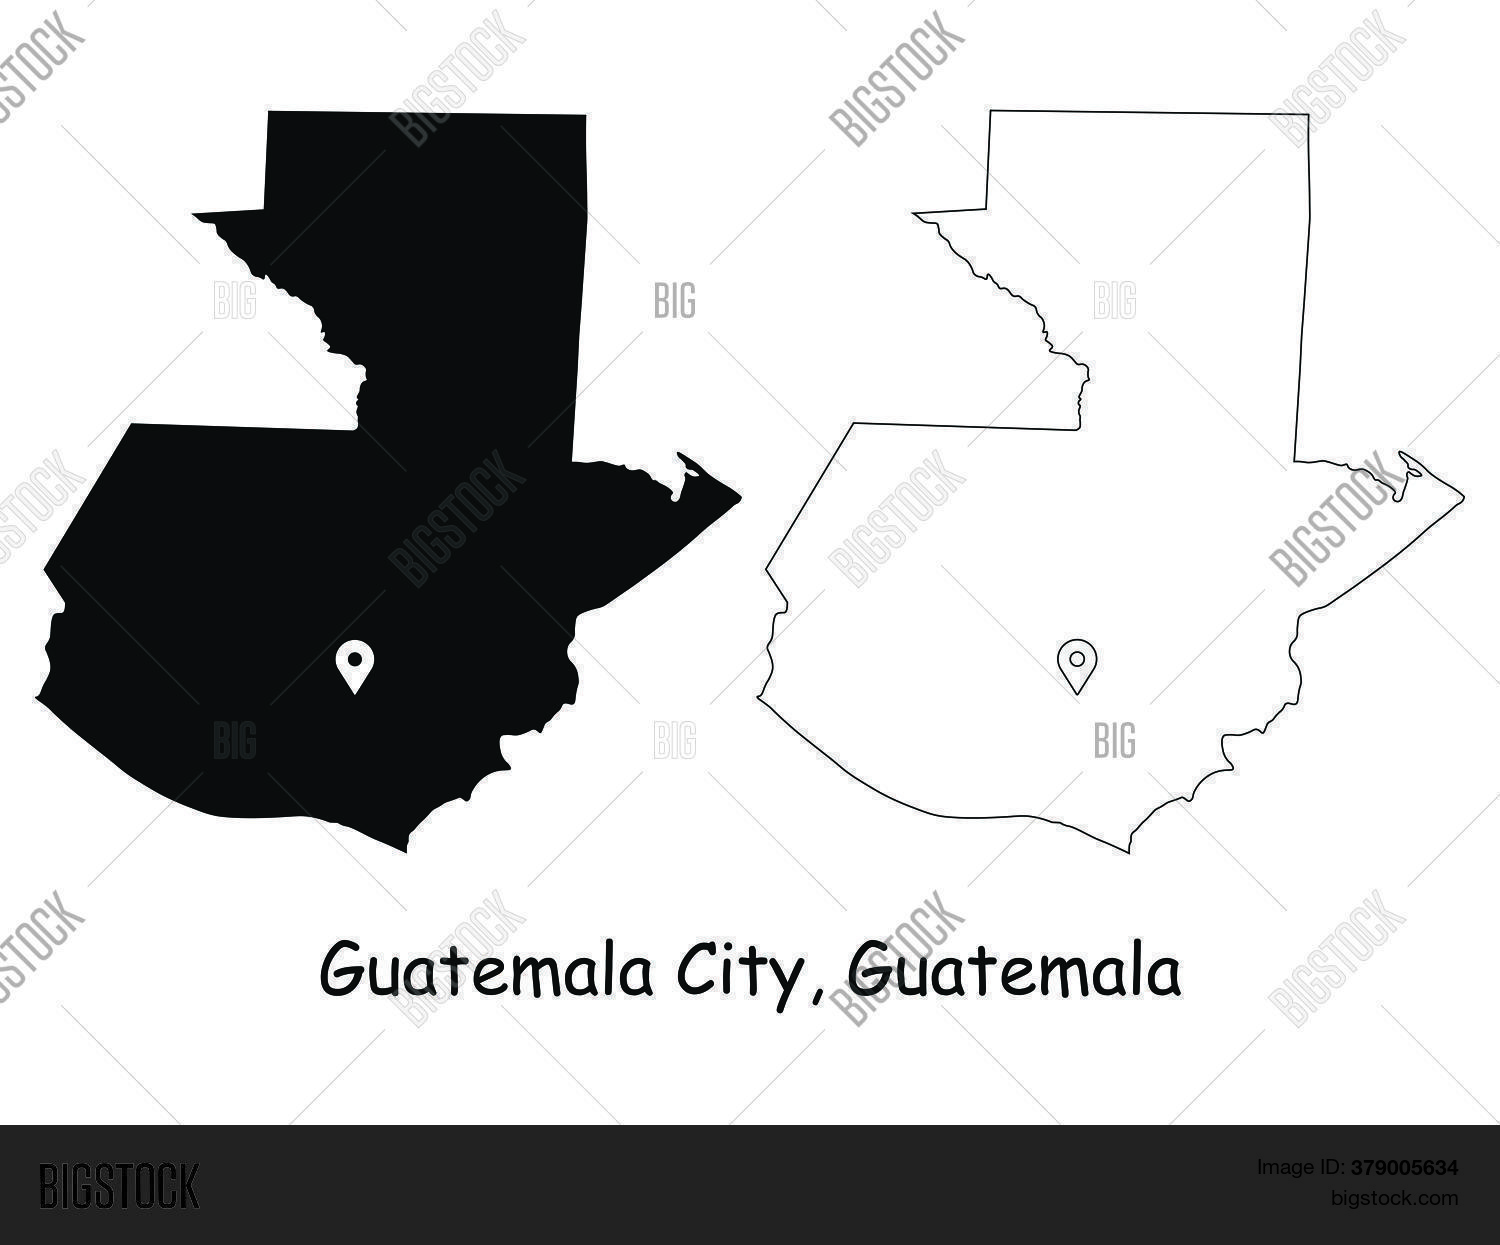 Picture of: Guatemala City Vector Photo Free Trial Bigstock